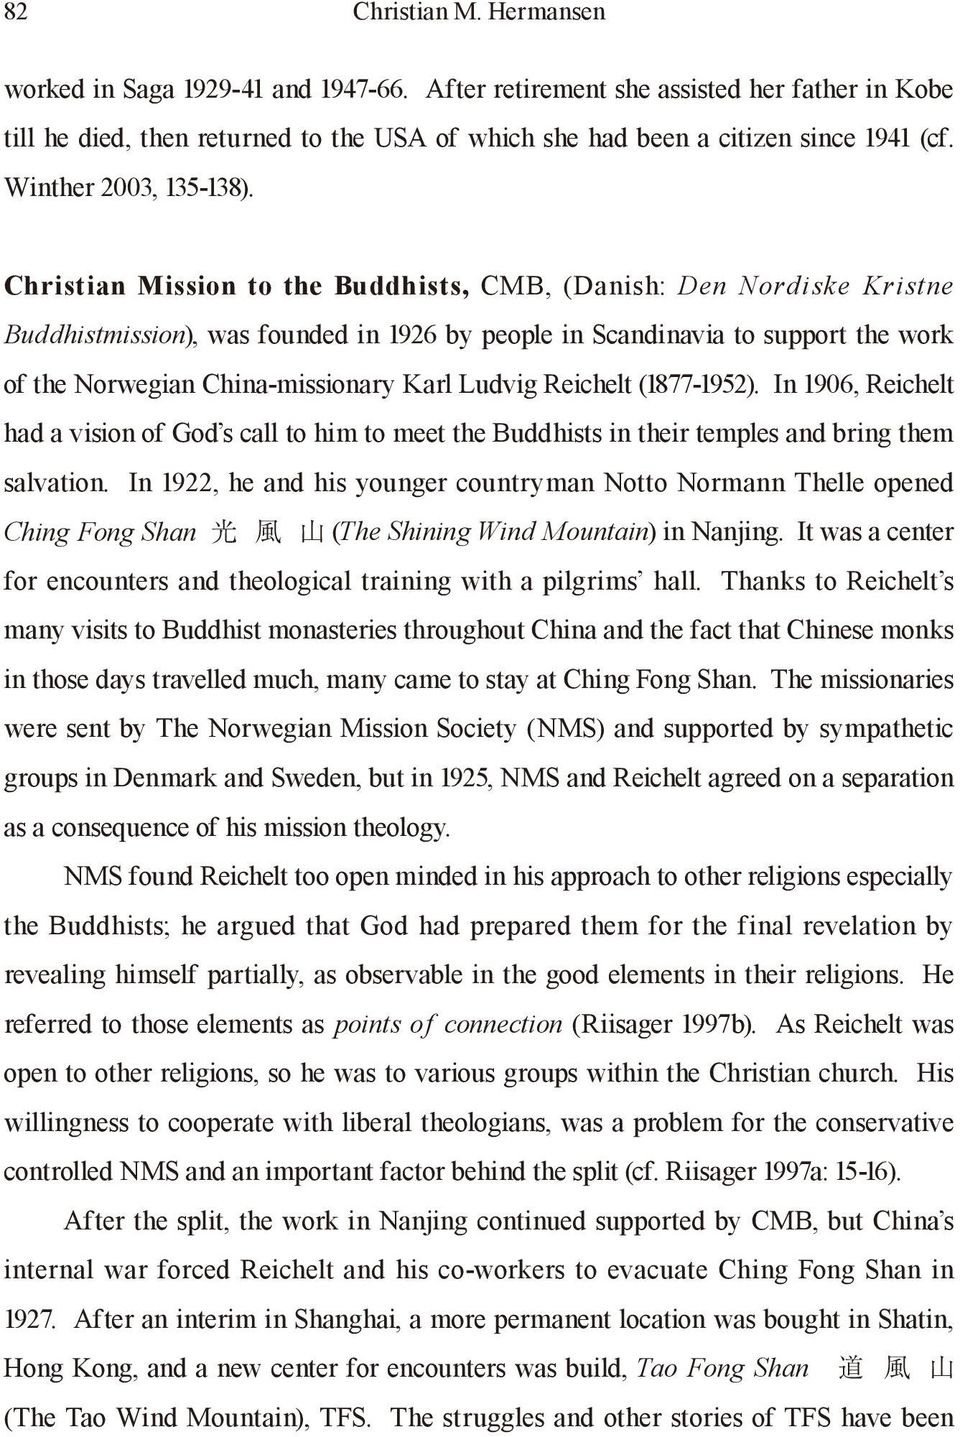 Christian Mission to the Buddhists, CMB, (Danish: Den Nordiske Kristne Buddhistmission), was founded in 1926 by people in Scandinavia to support the work of the Norwegian China-missionary Karl Ludvig